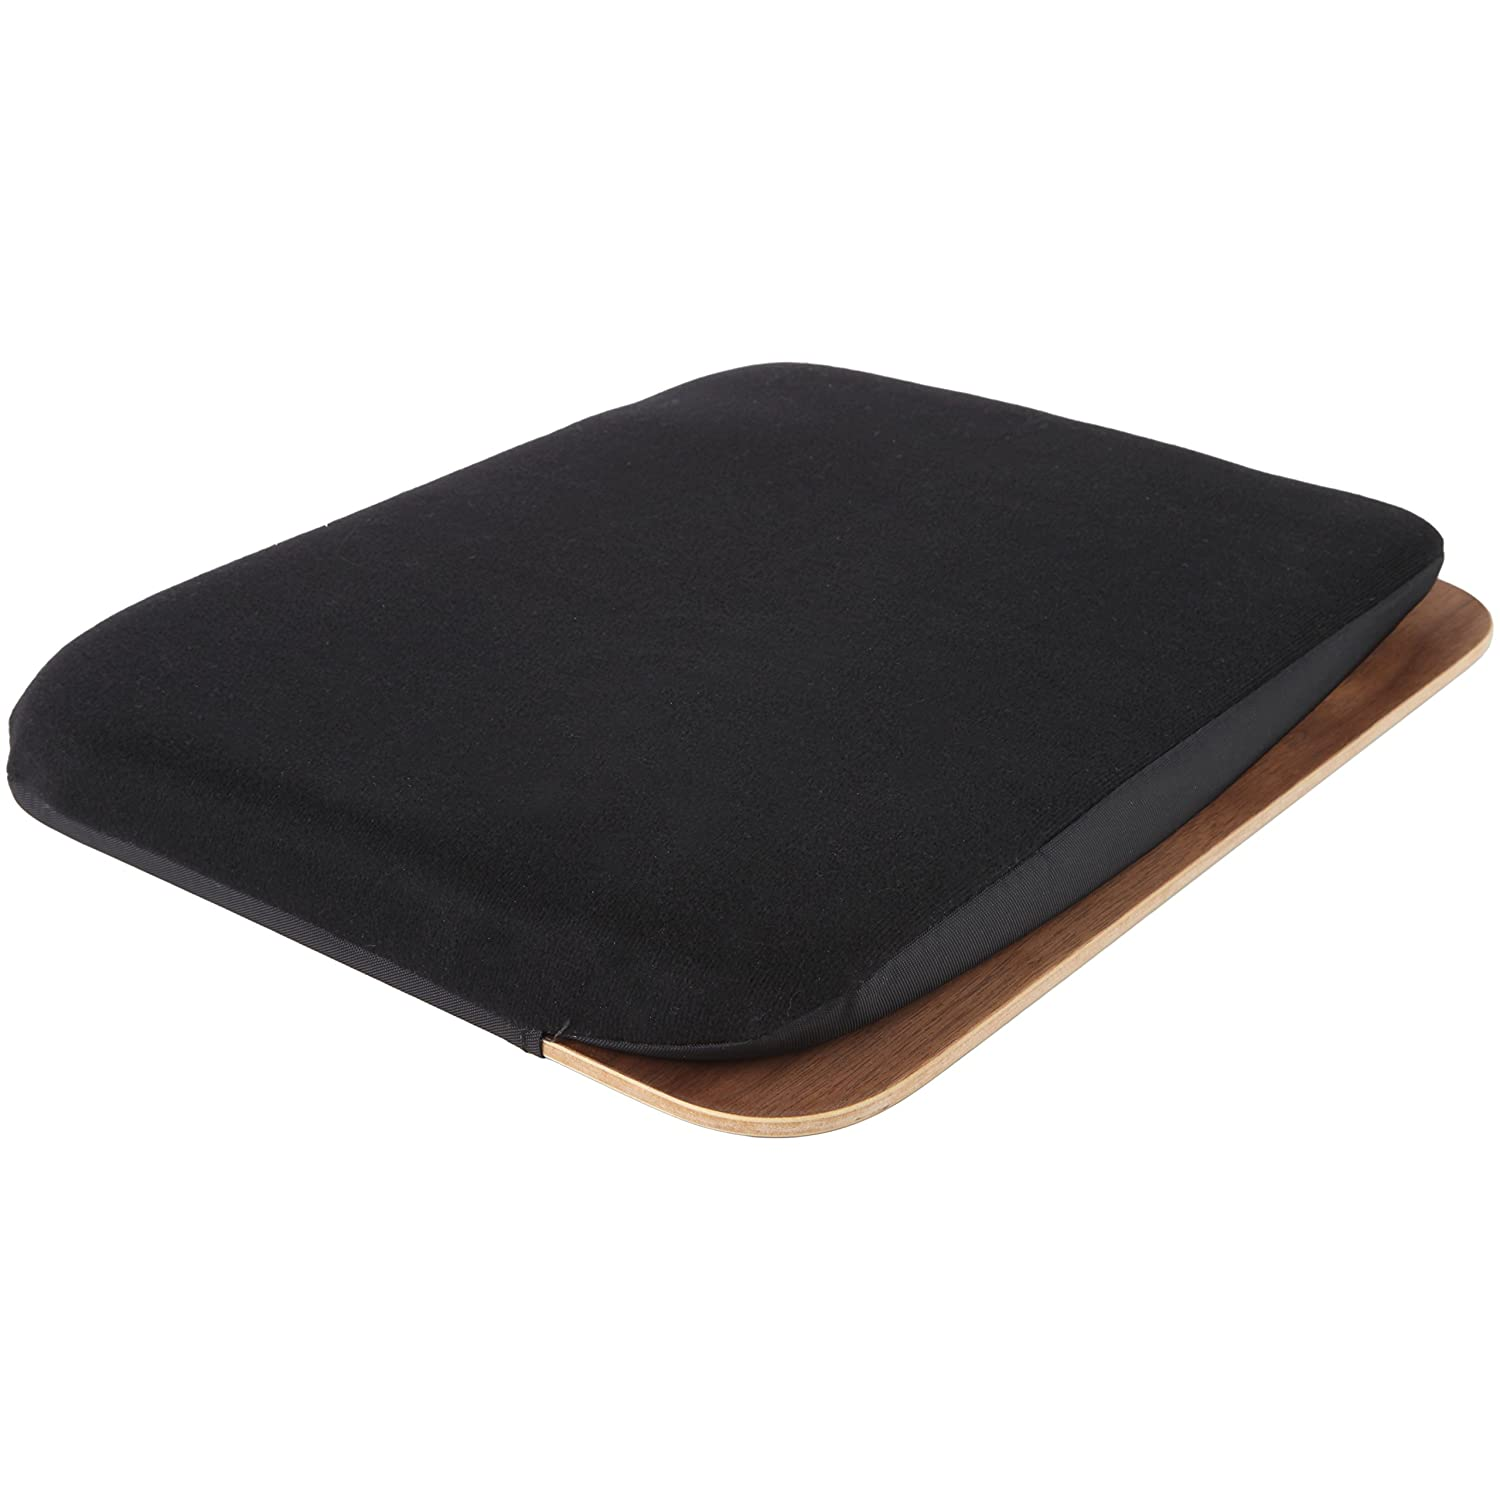 "Comfort Cushion for 25"" Laptop Lapdesk EMF Pad. Made for HARApad."